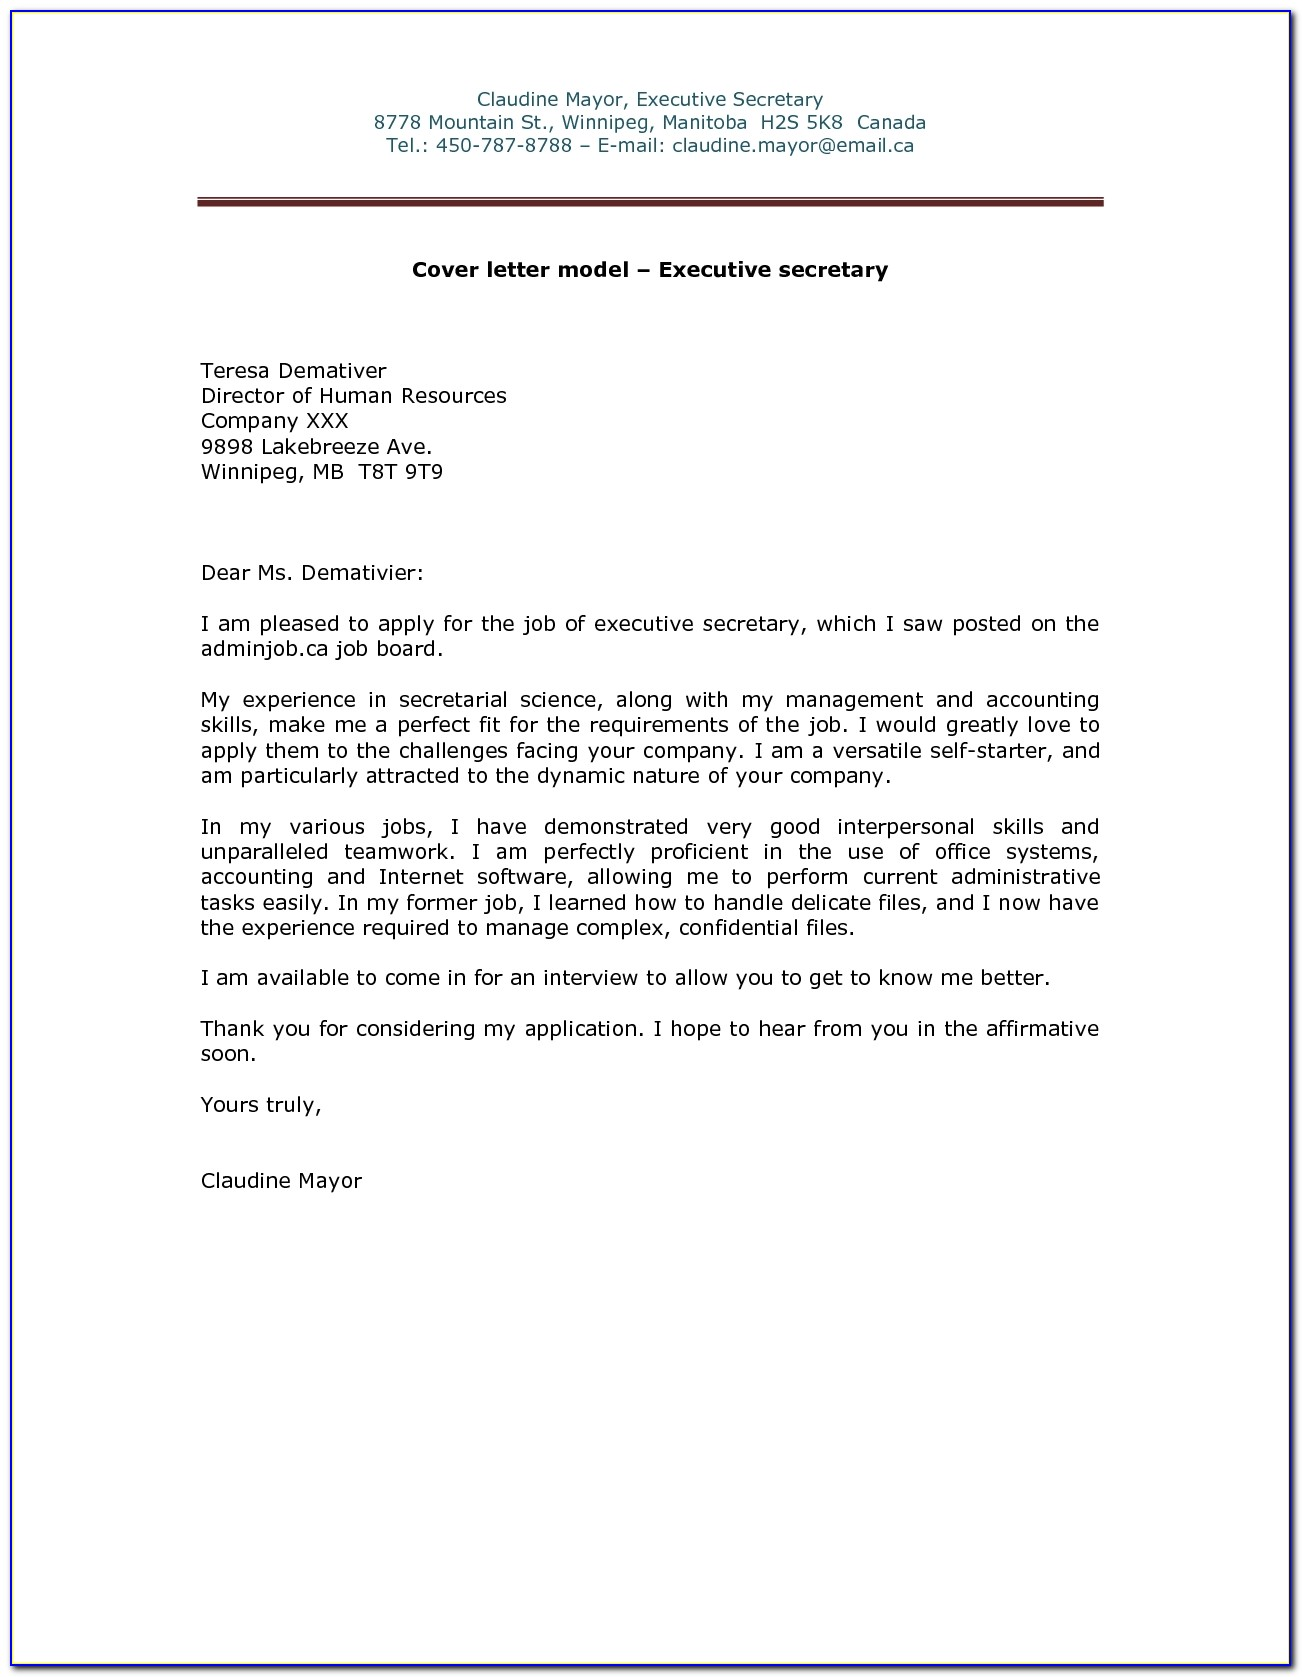 Sample Cover Letter In Email For Job Application With Regard To Job Application Email Template